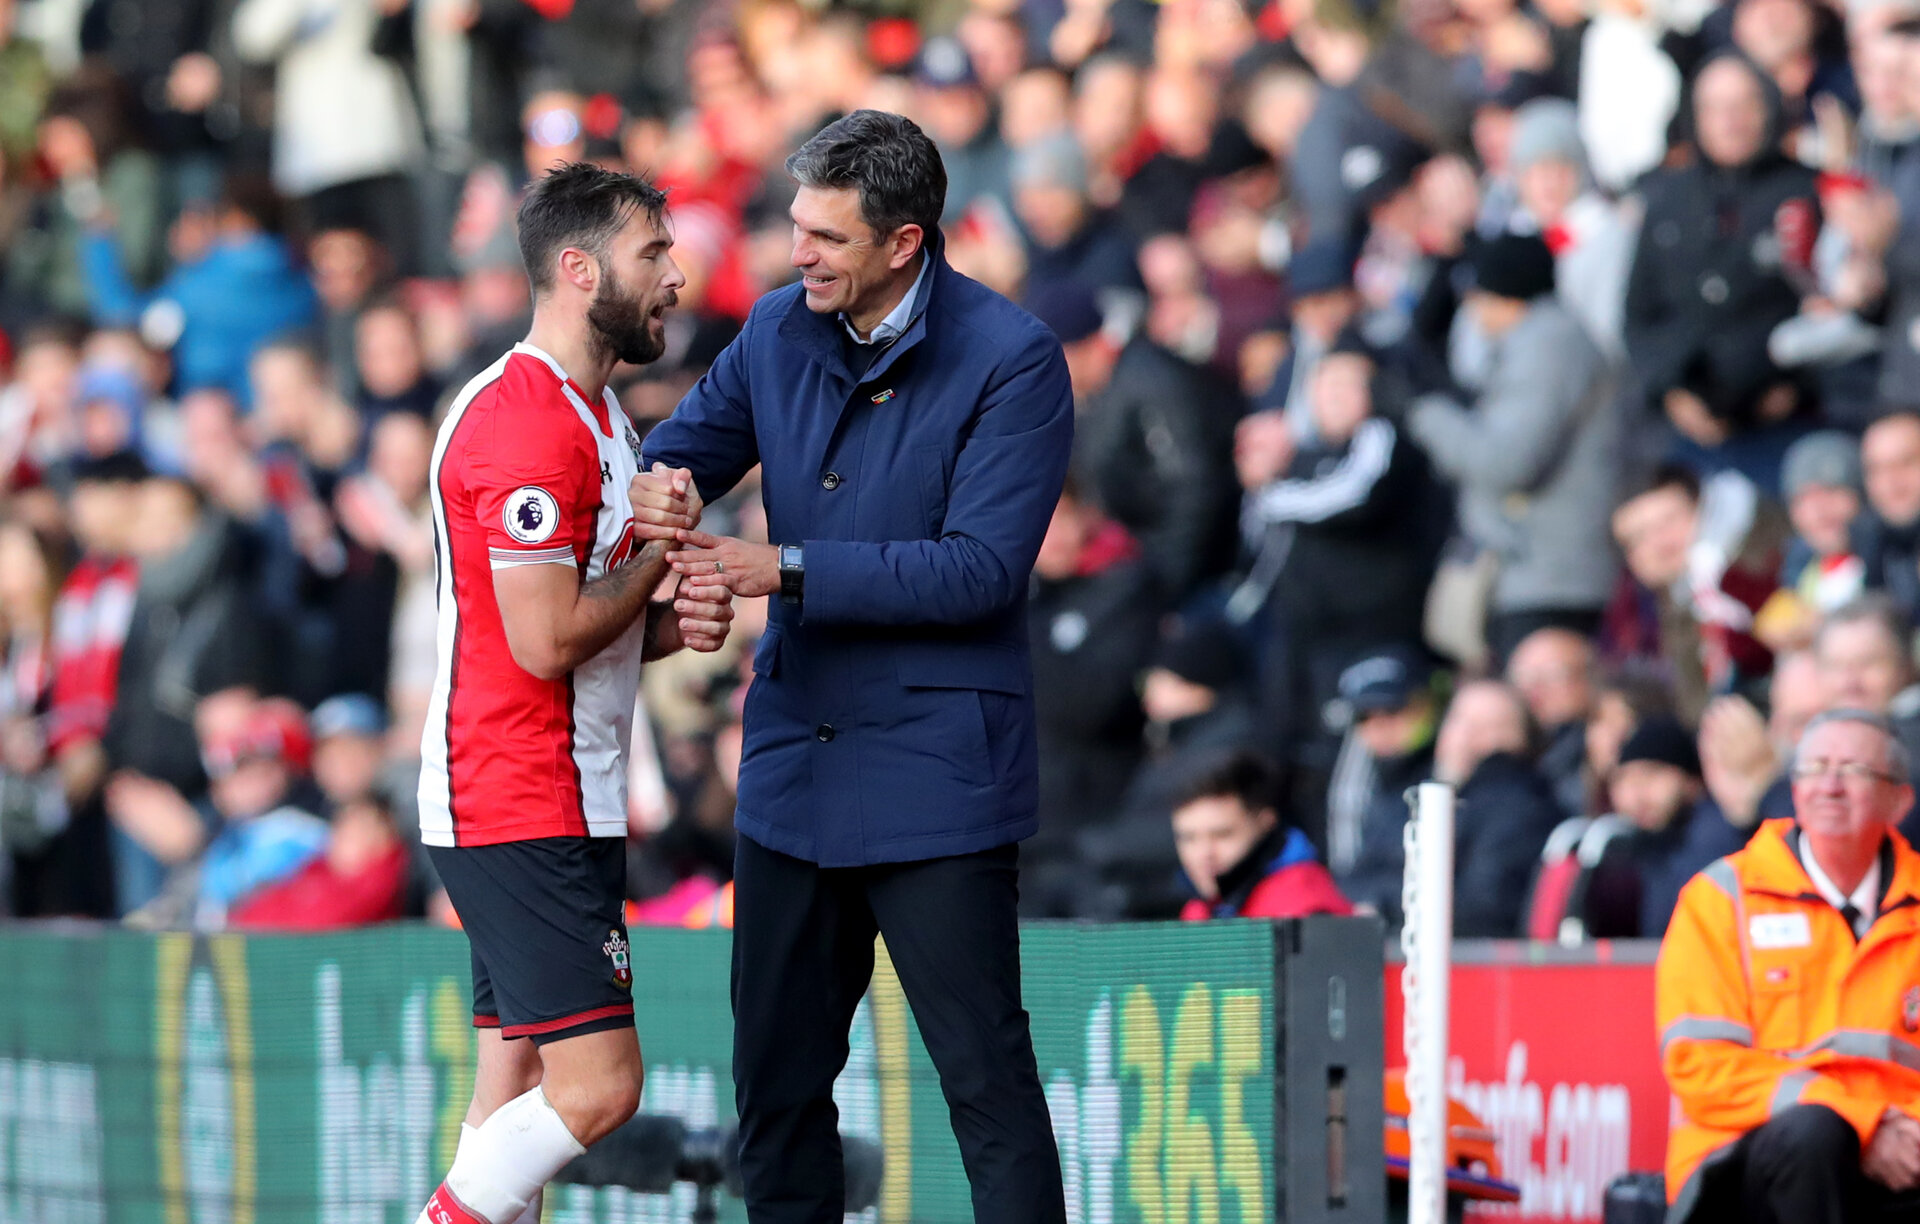 SOUTHAMPTON, ENGLAND - NOVEMBER 26: Southampton's Charlie Austin(L) and manager Mauricio Pellegrino during the Premier League match between Southampton and Everton at St Mary's Stadium on November 26, 2017 in Southampton, England. (Photo by Matt Watson/Southampton FC via Getty Images)